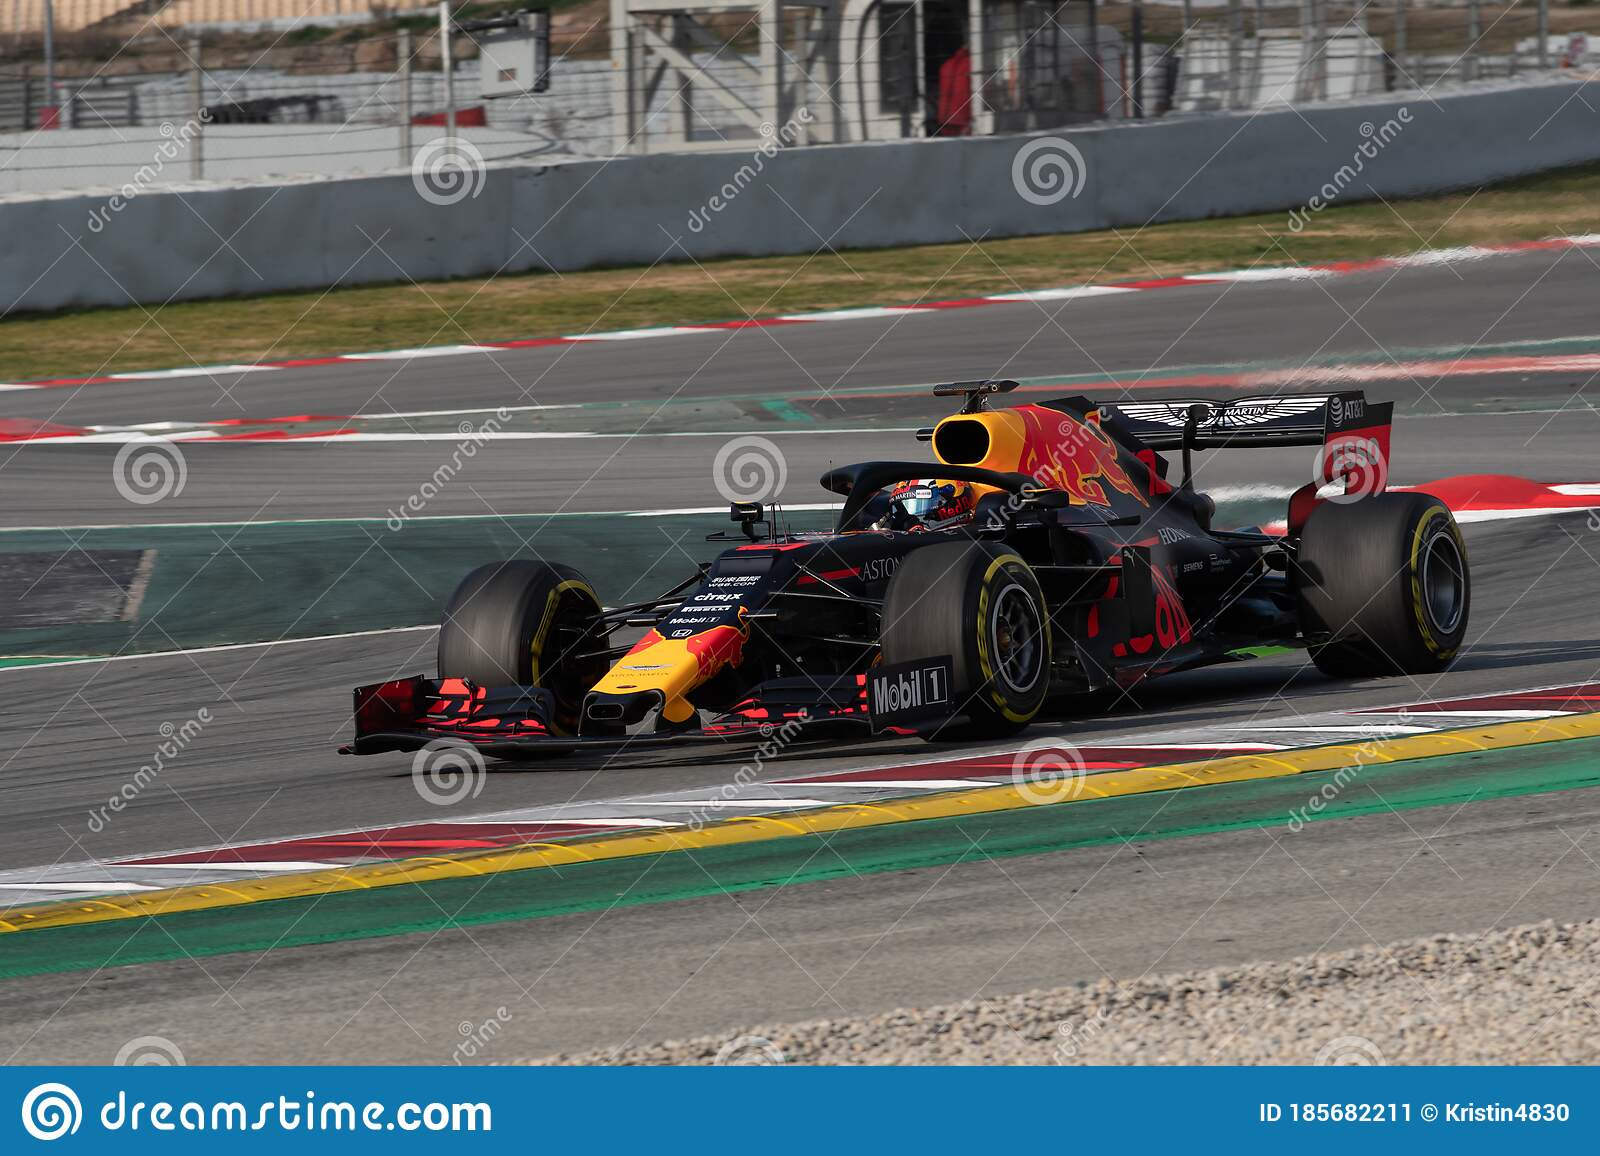 Pierre Gasly F1 Racing Driver In Red Bull Car Editorial Photo Image Of Noma Martin 185682211